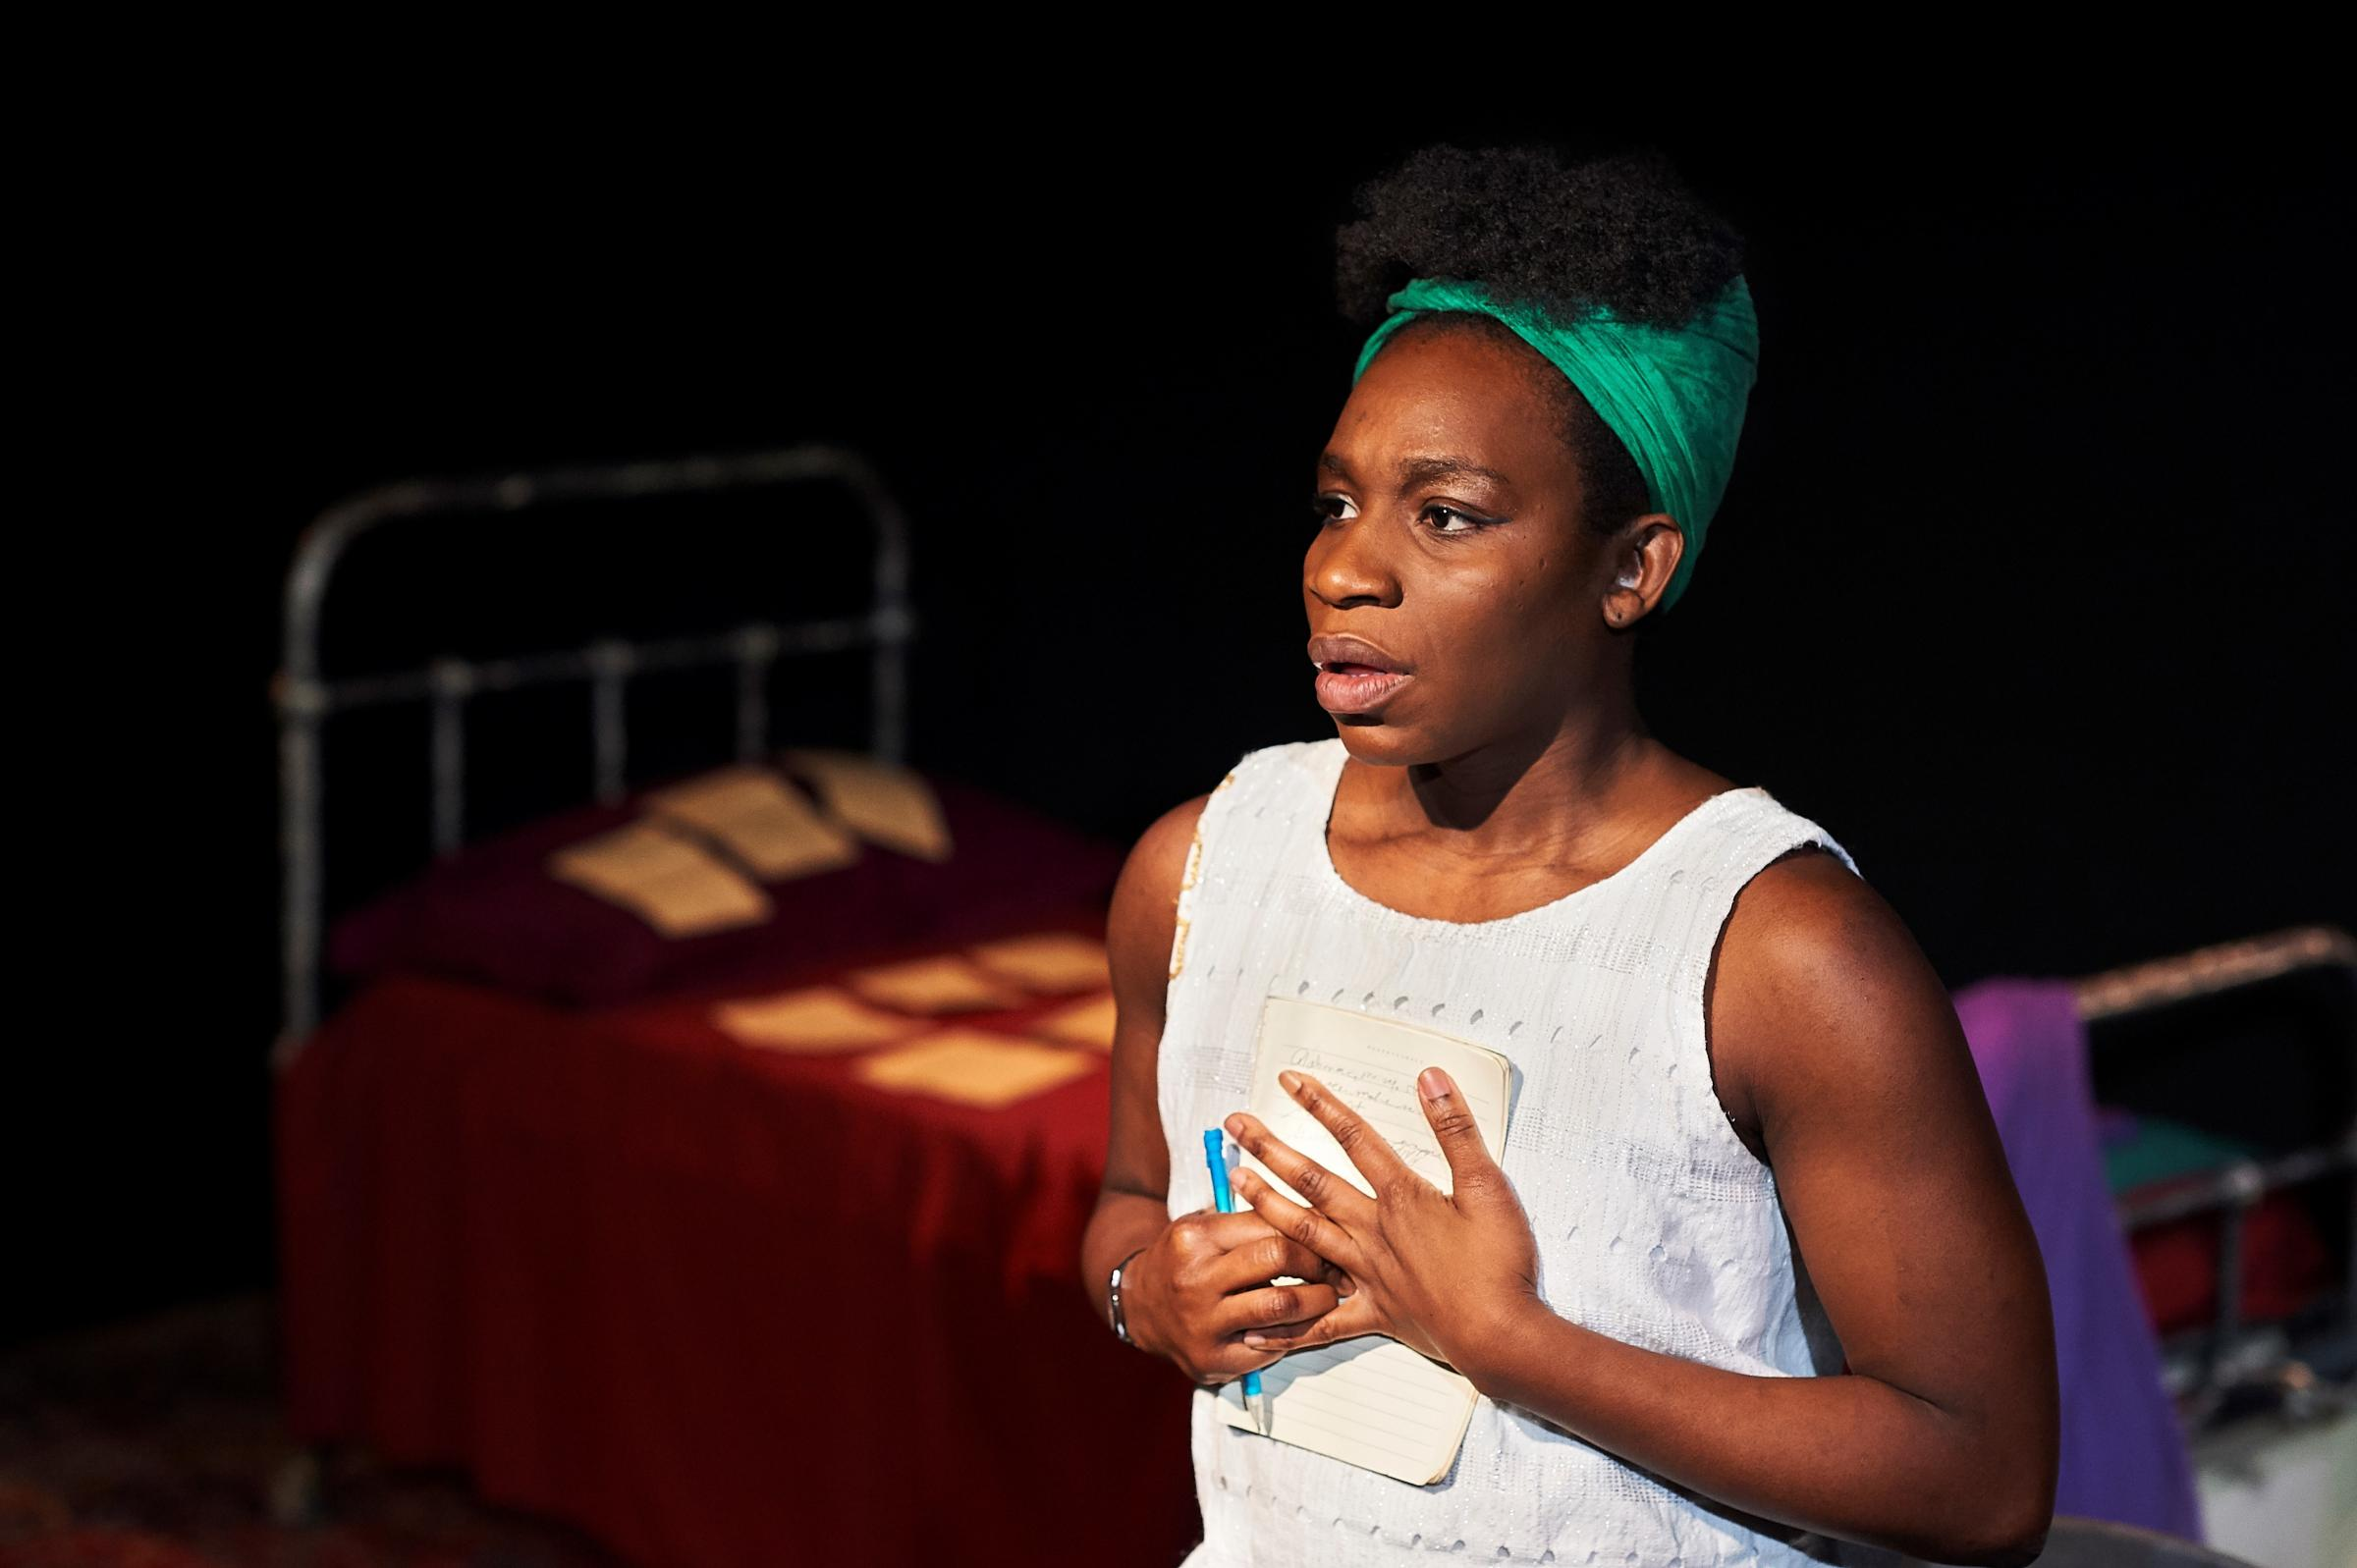 Two inspiring new plays take to the stage in Finchley